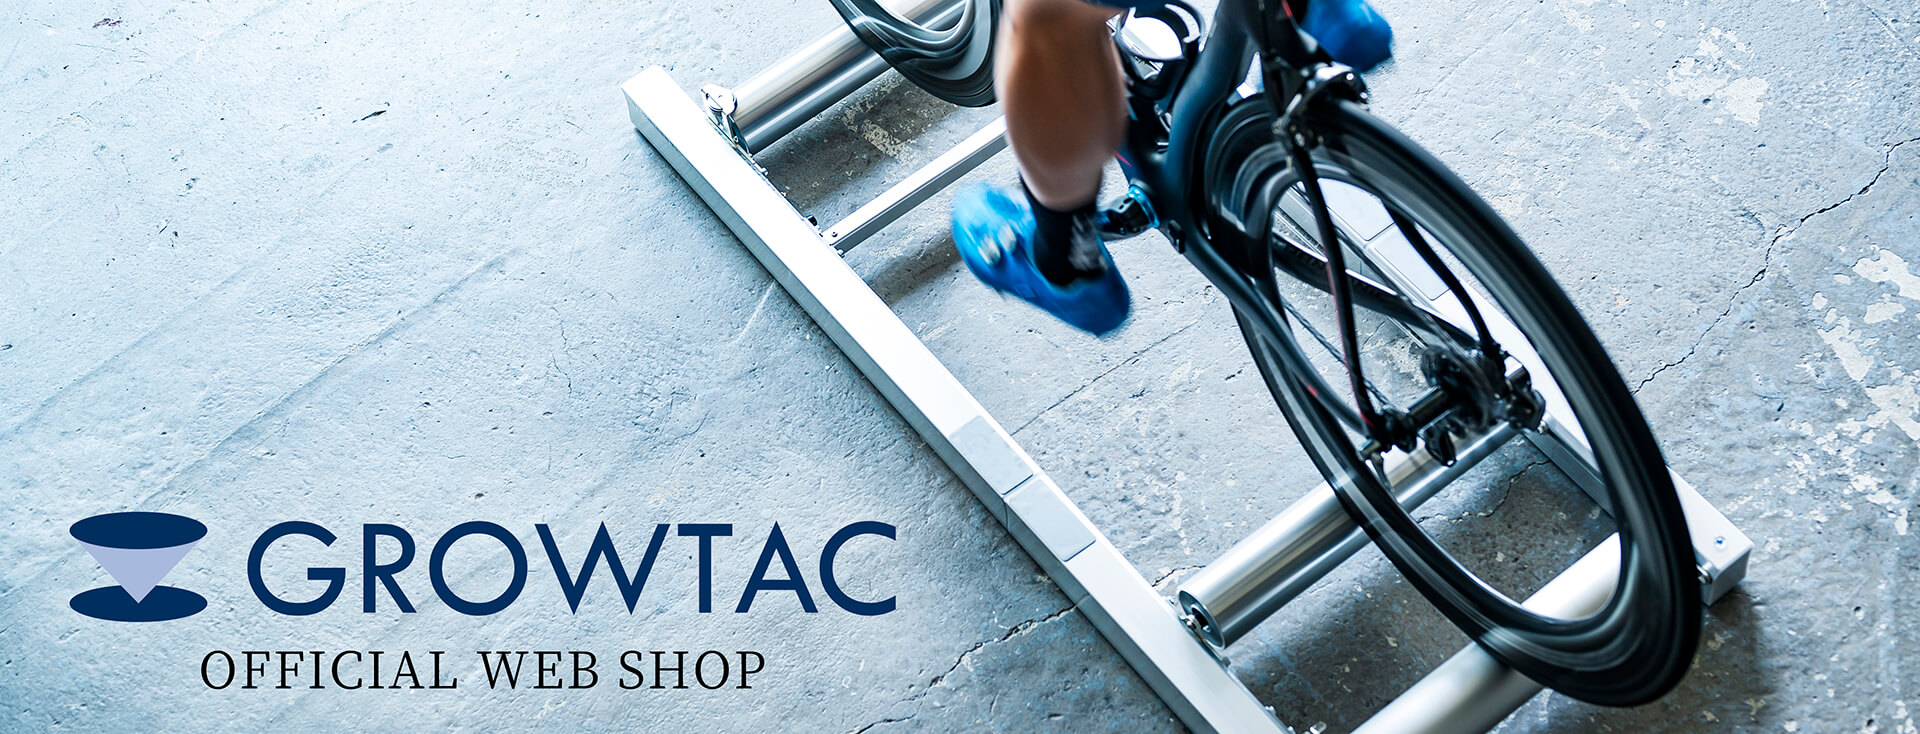 GROWTAC OFFICIAL WEB SHOP